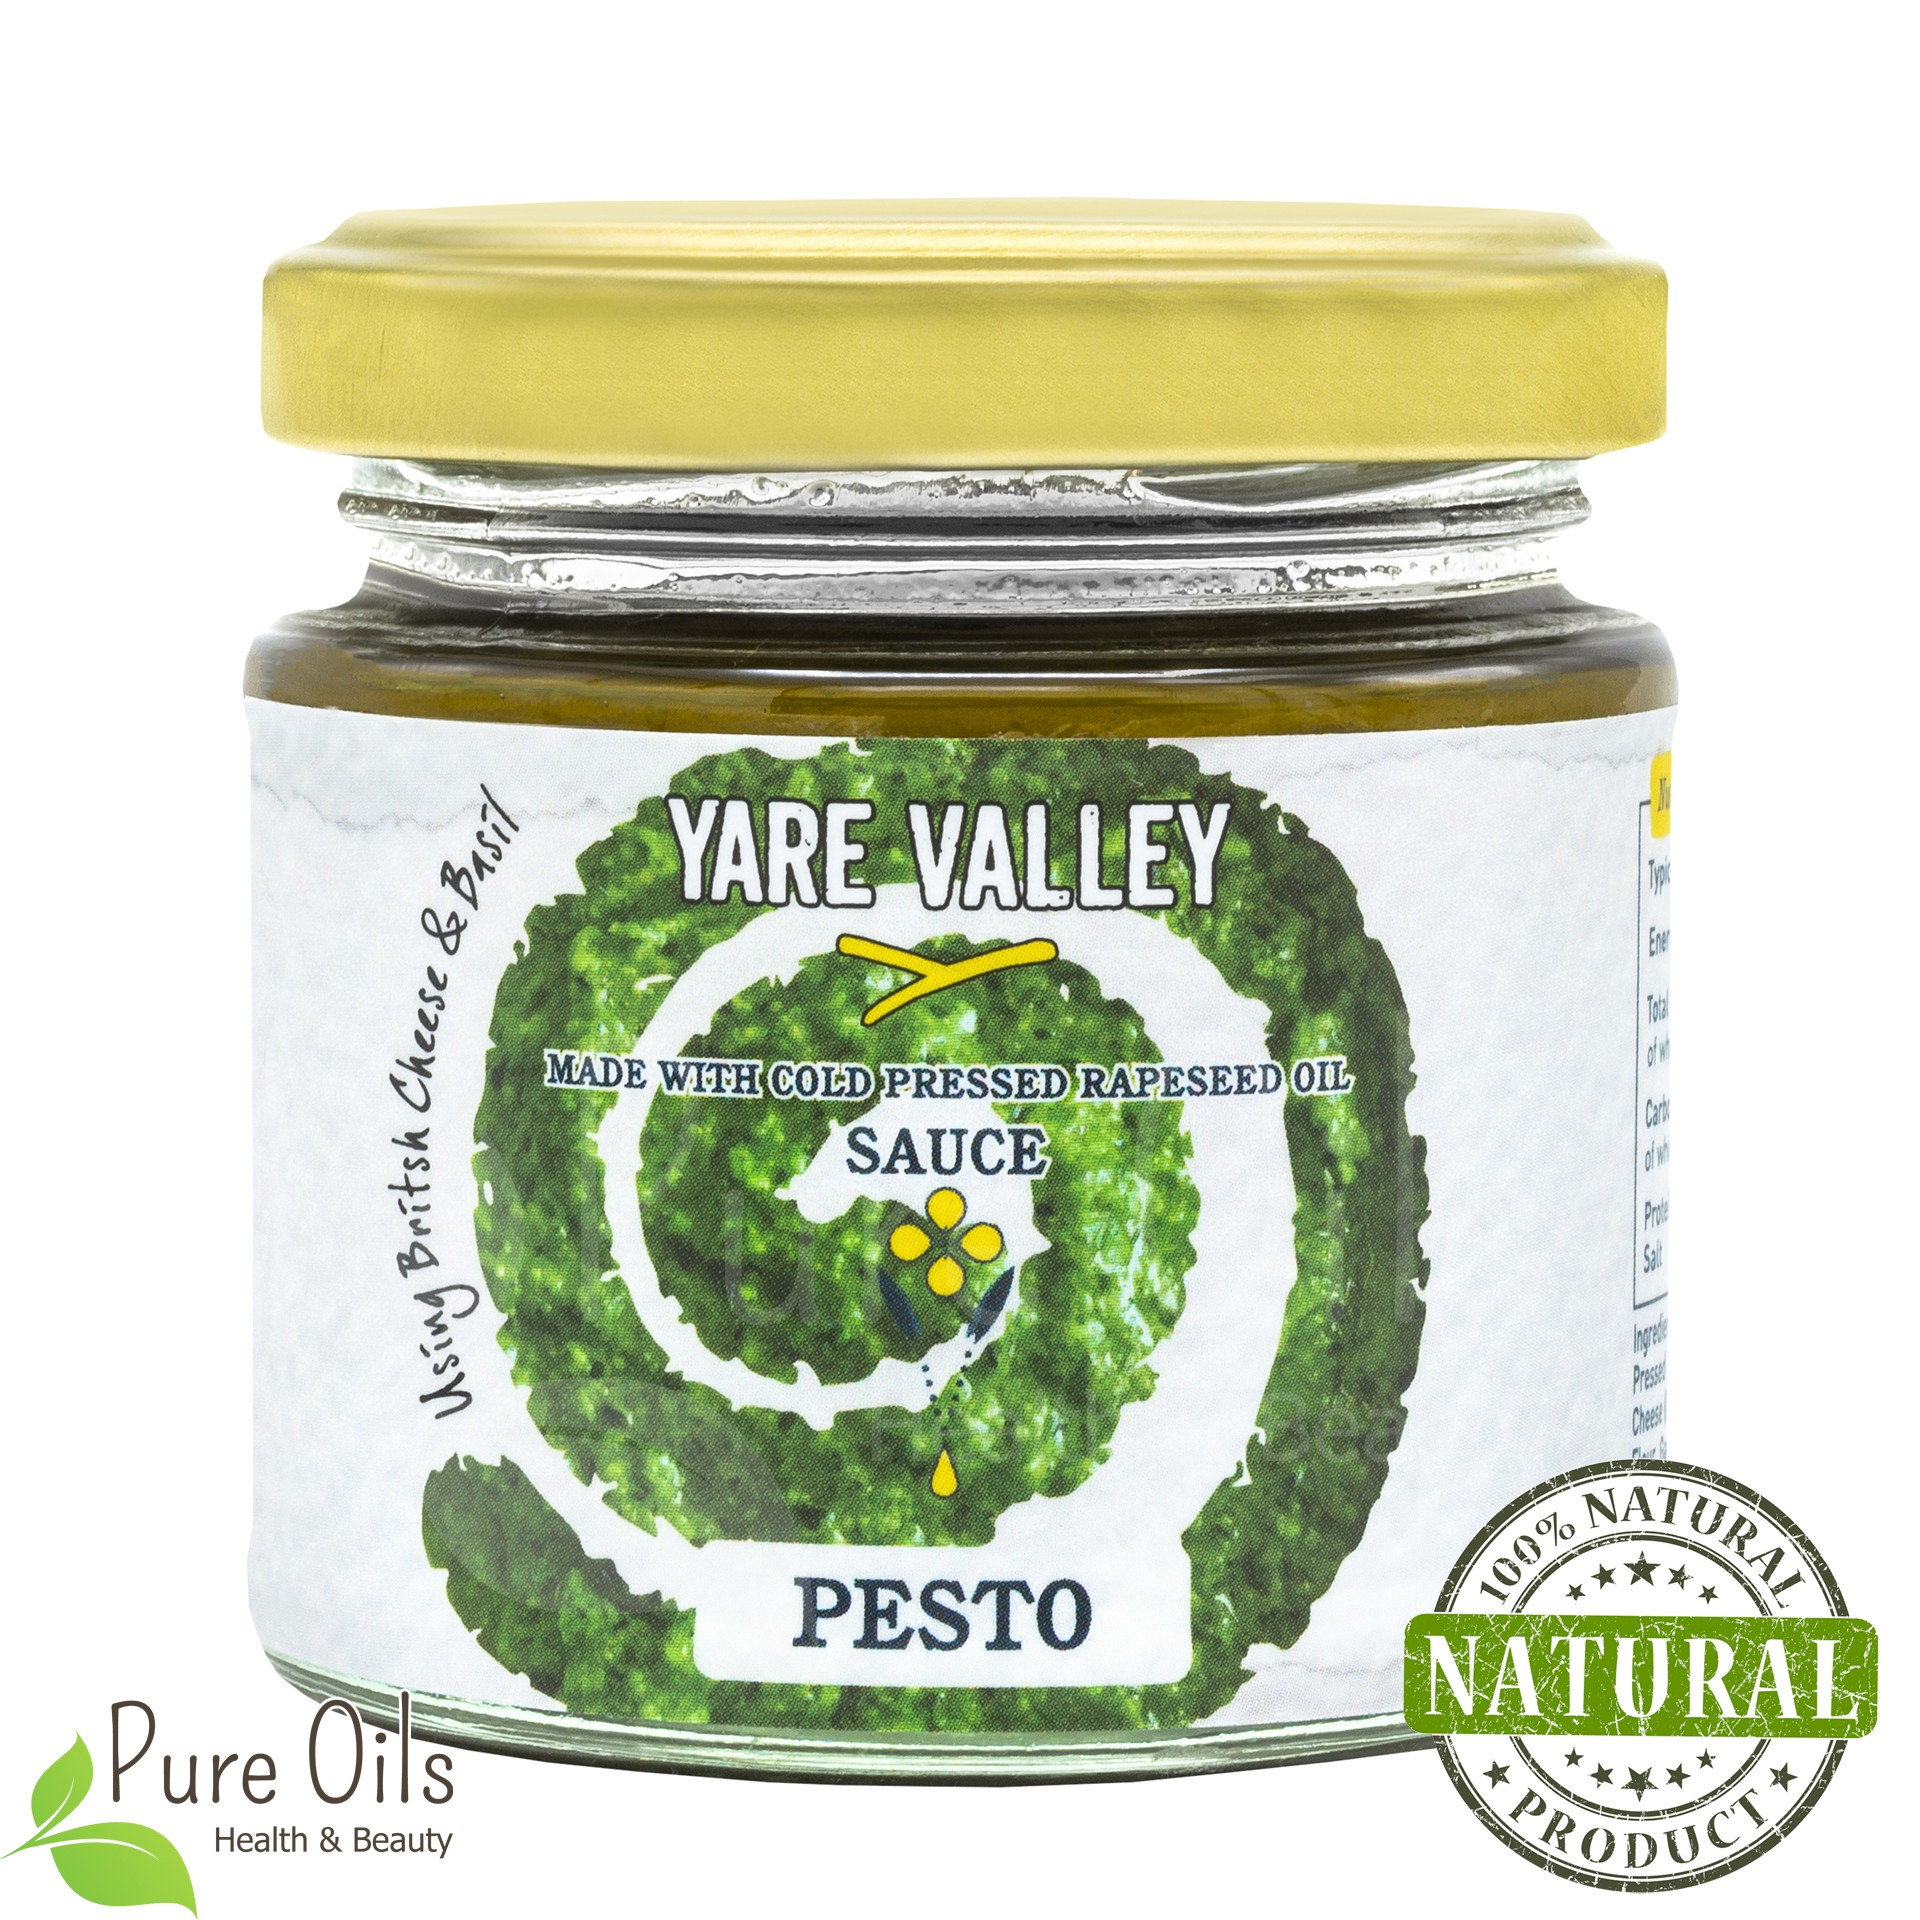 Pesto Sauce, Yare Valley